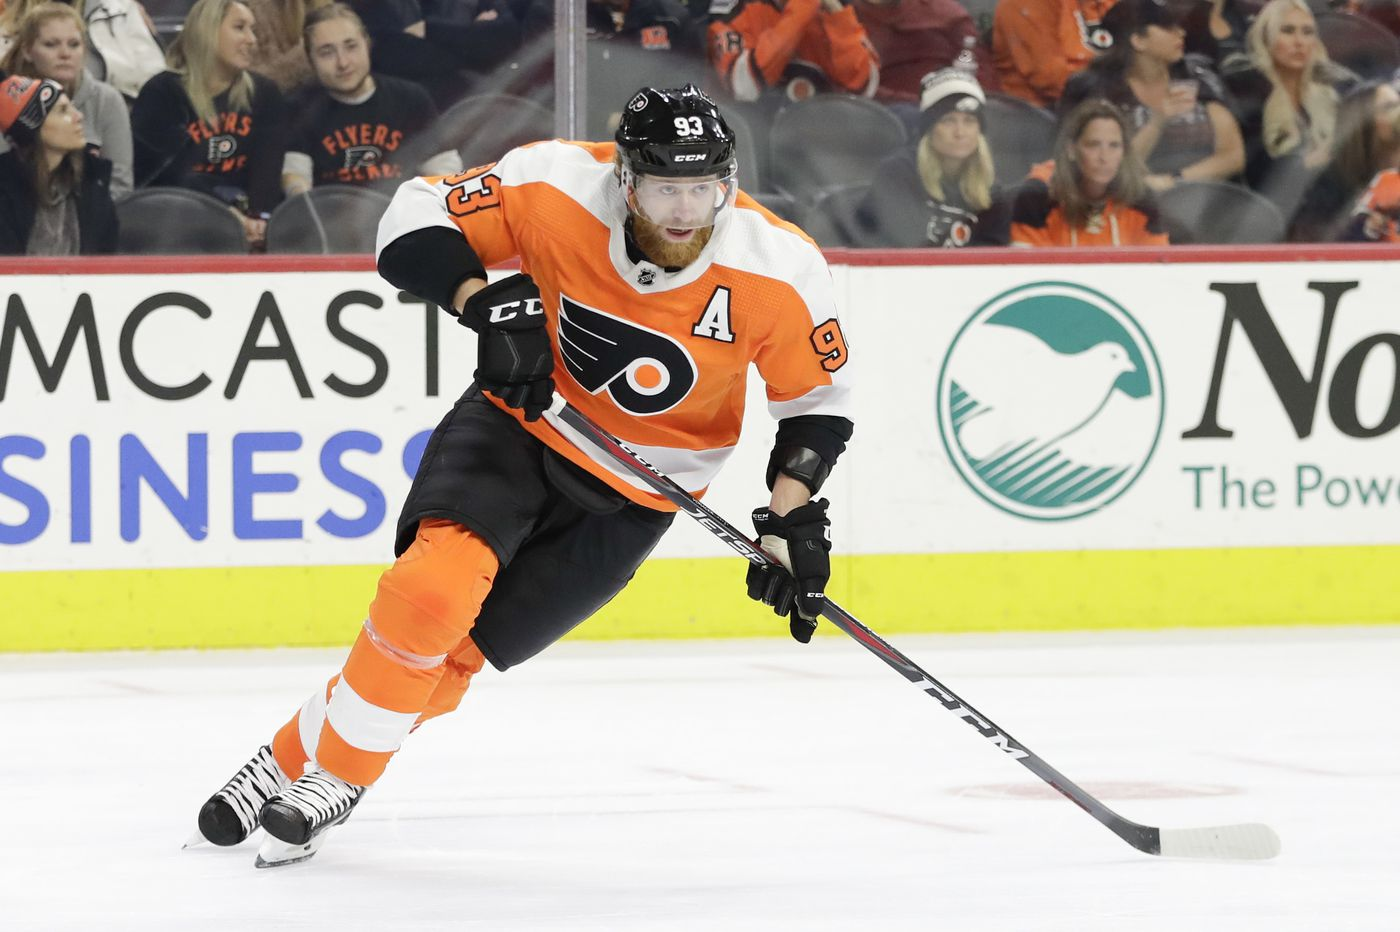 Jake Voracek moved to Sean Couturier's line; Scott Laughton returning Saturday for Flyers